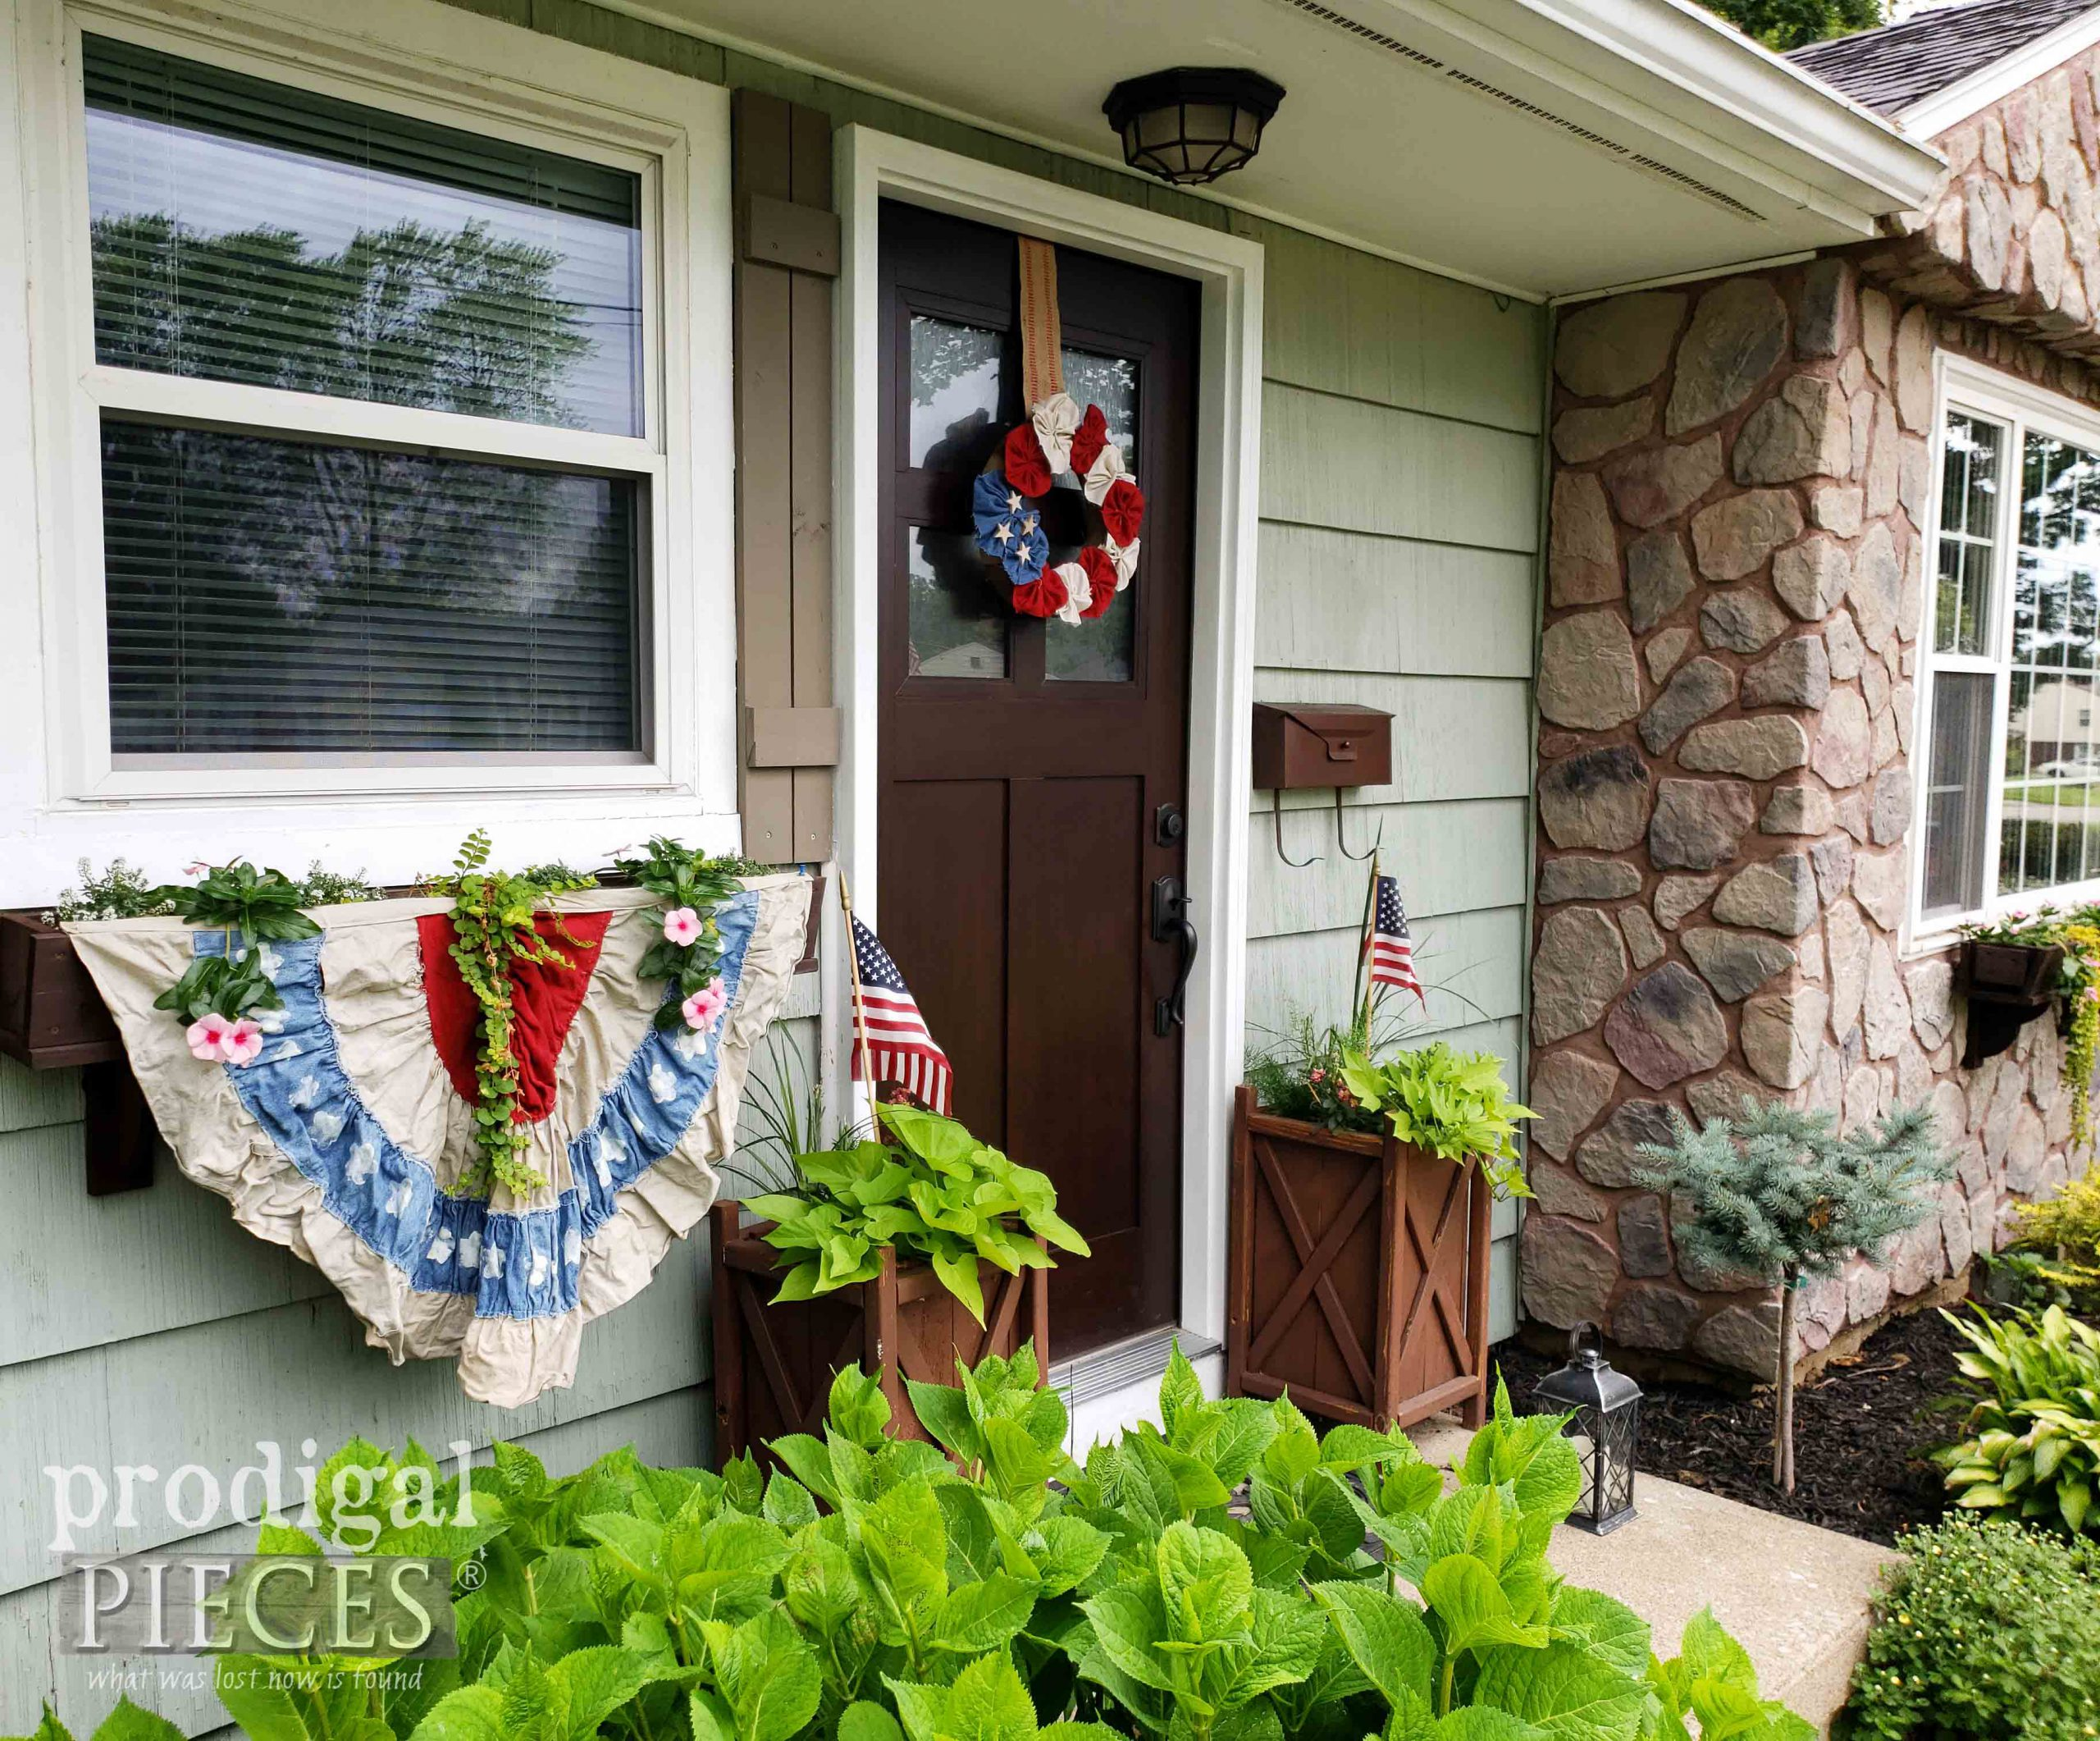 U.S.A. Independence Day Decor ~ 4th of July Wreath by Larissa of Prodigal Pieces | prodigalpieces.com #prodigalpieces #4thofjuly #independenceday #usa #farmhouse